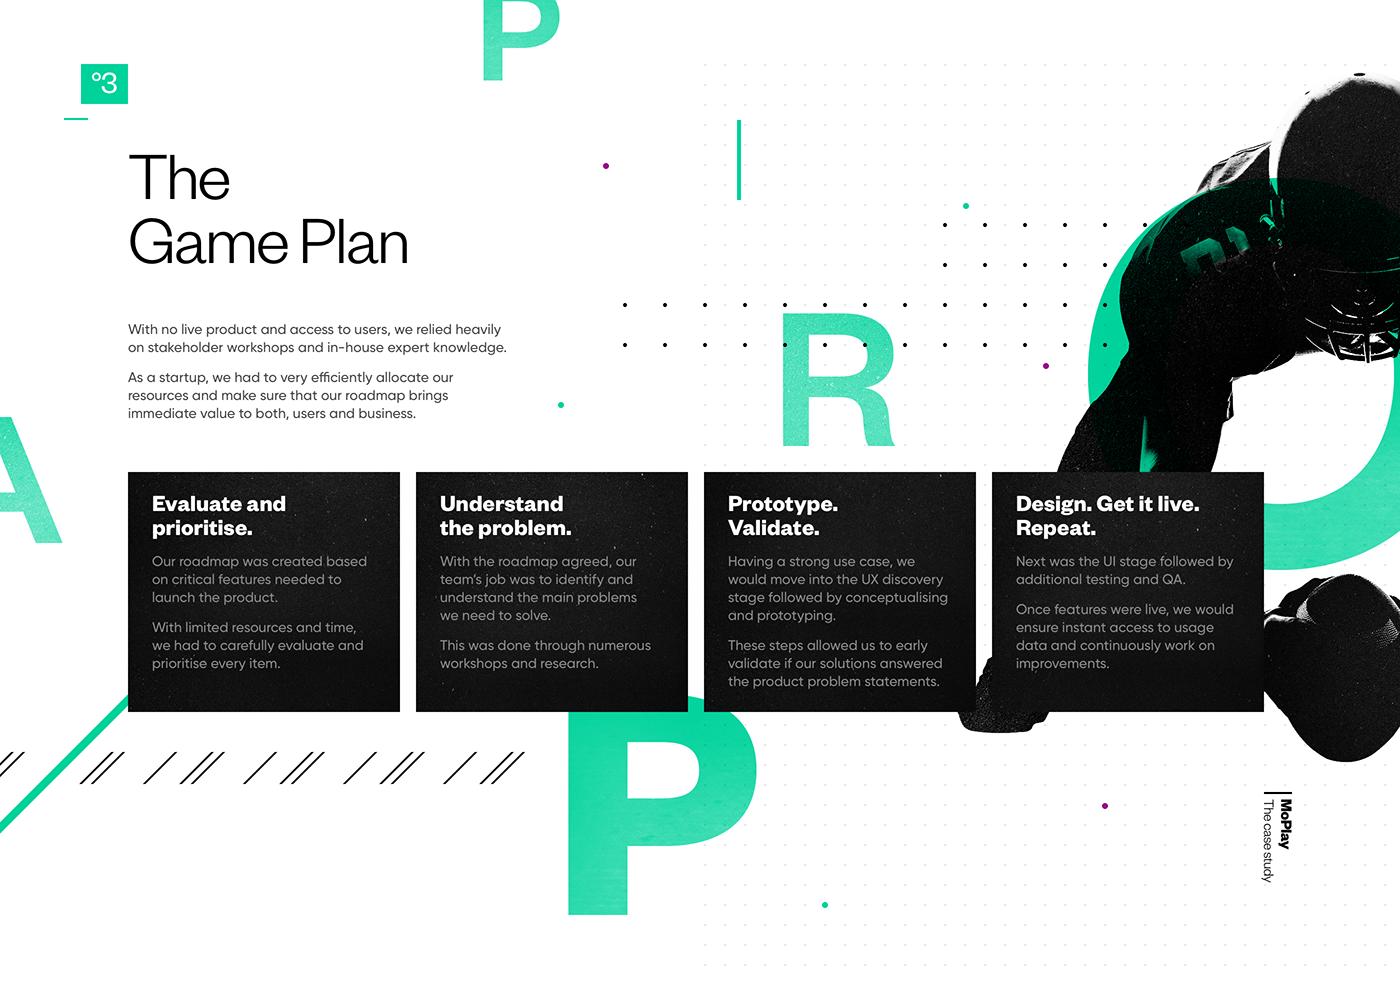 betting Case Study design Gaming interactions product product design  showcase UI ux